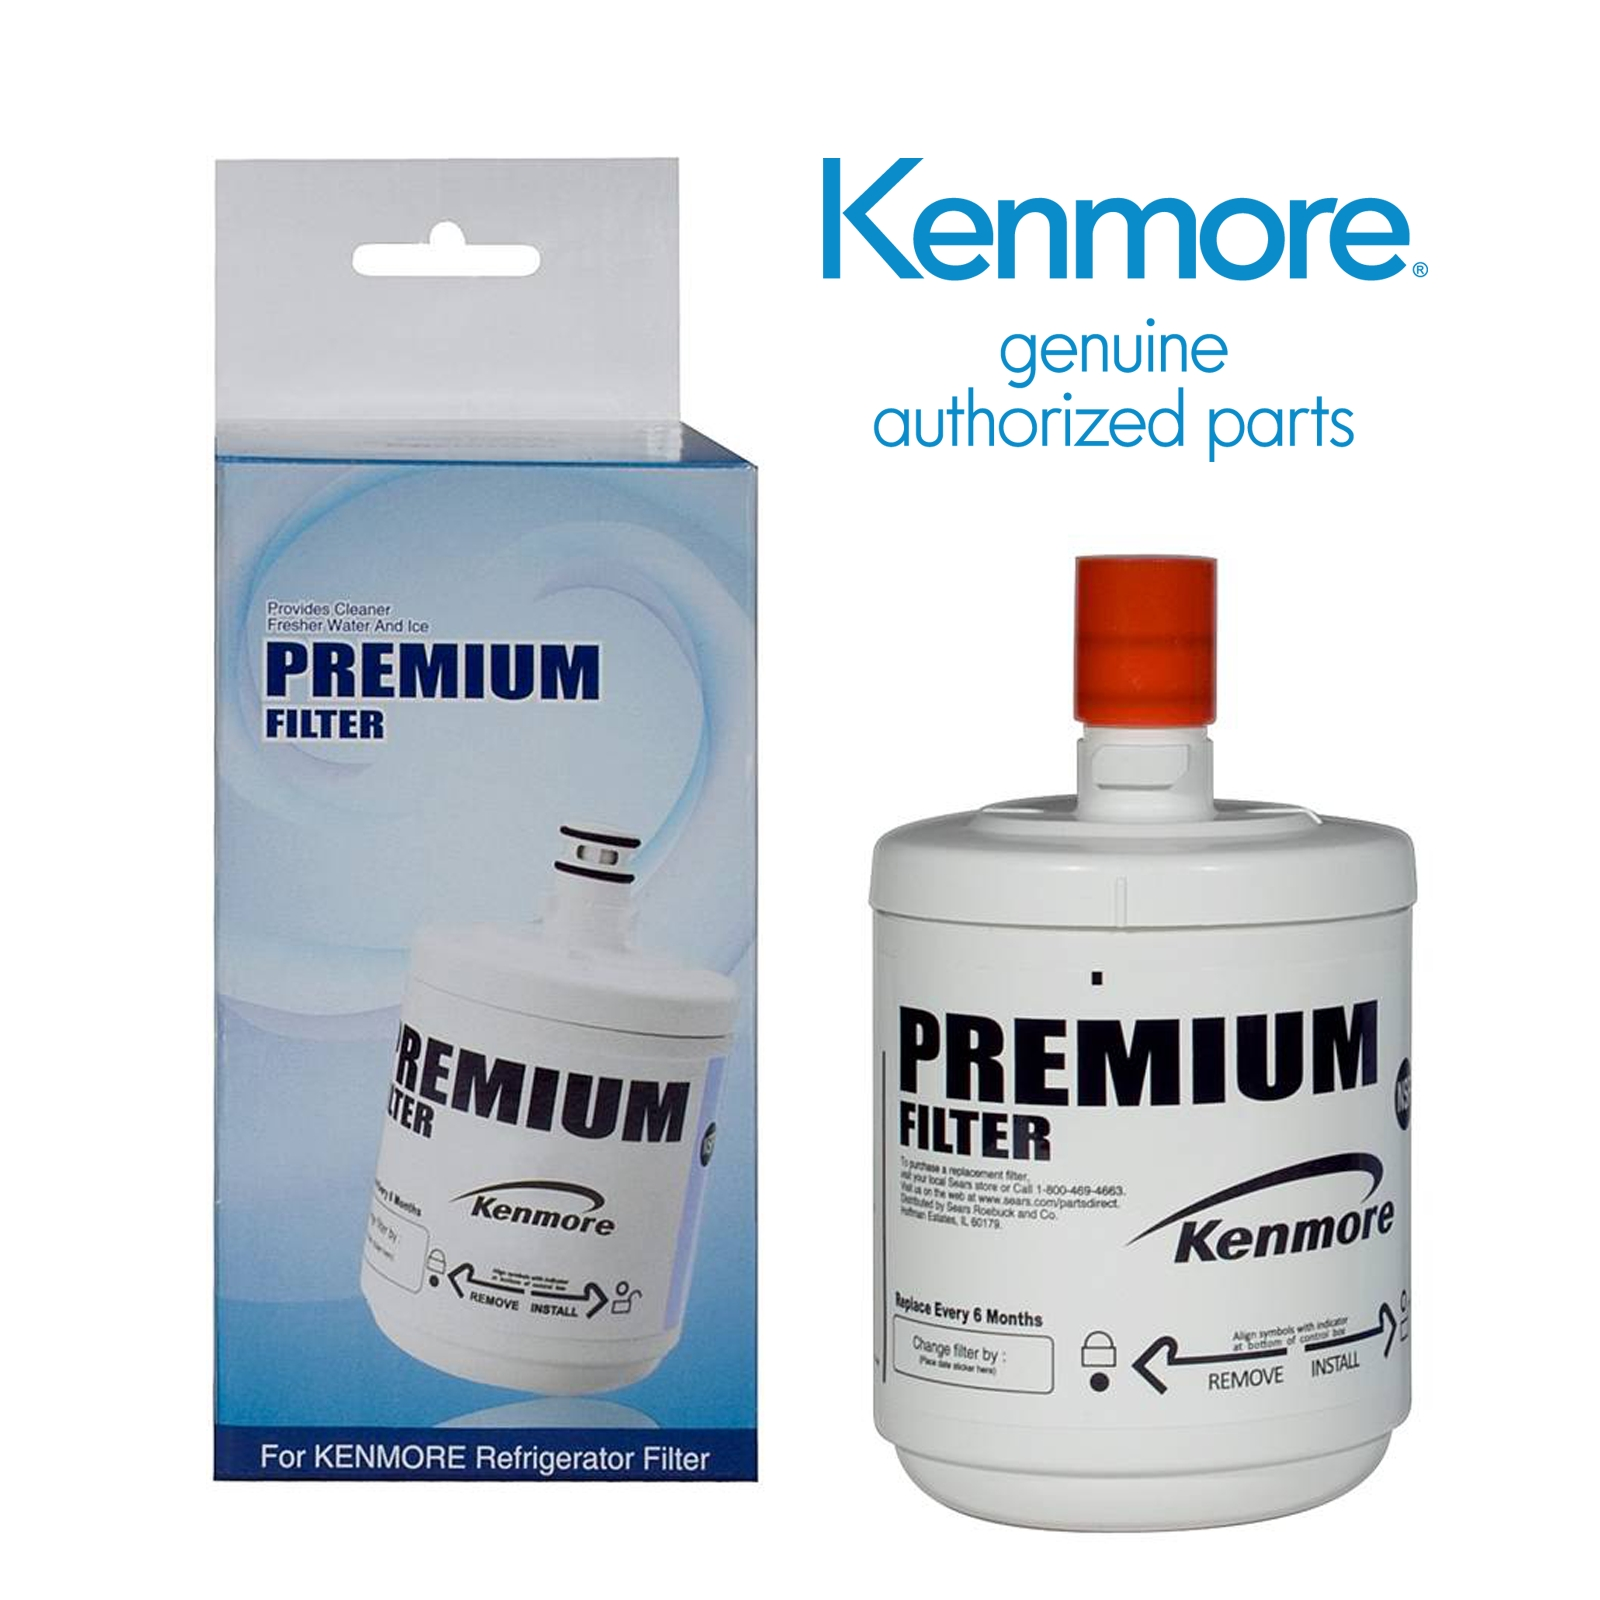 Kenmore 09890 Refrigerator Water Filter 500-Gallon Capacity